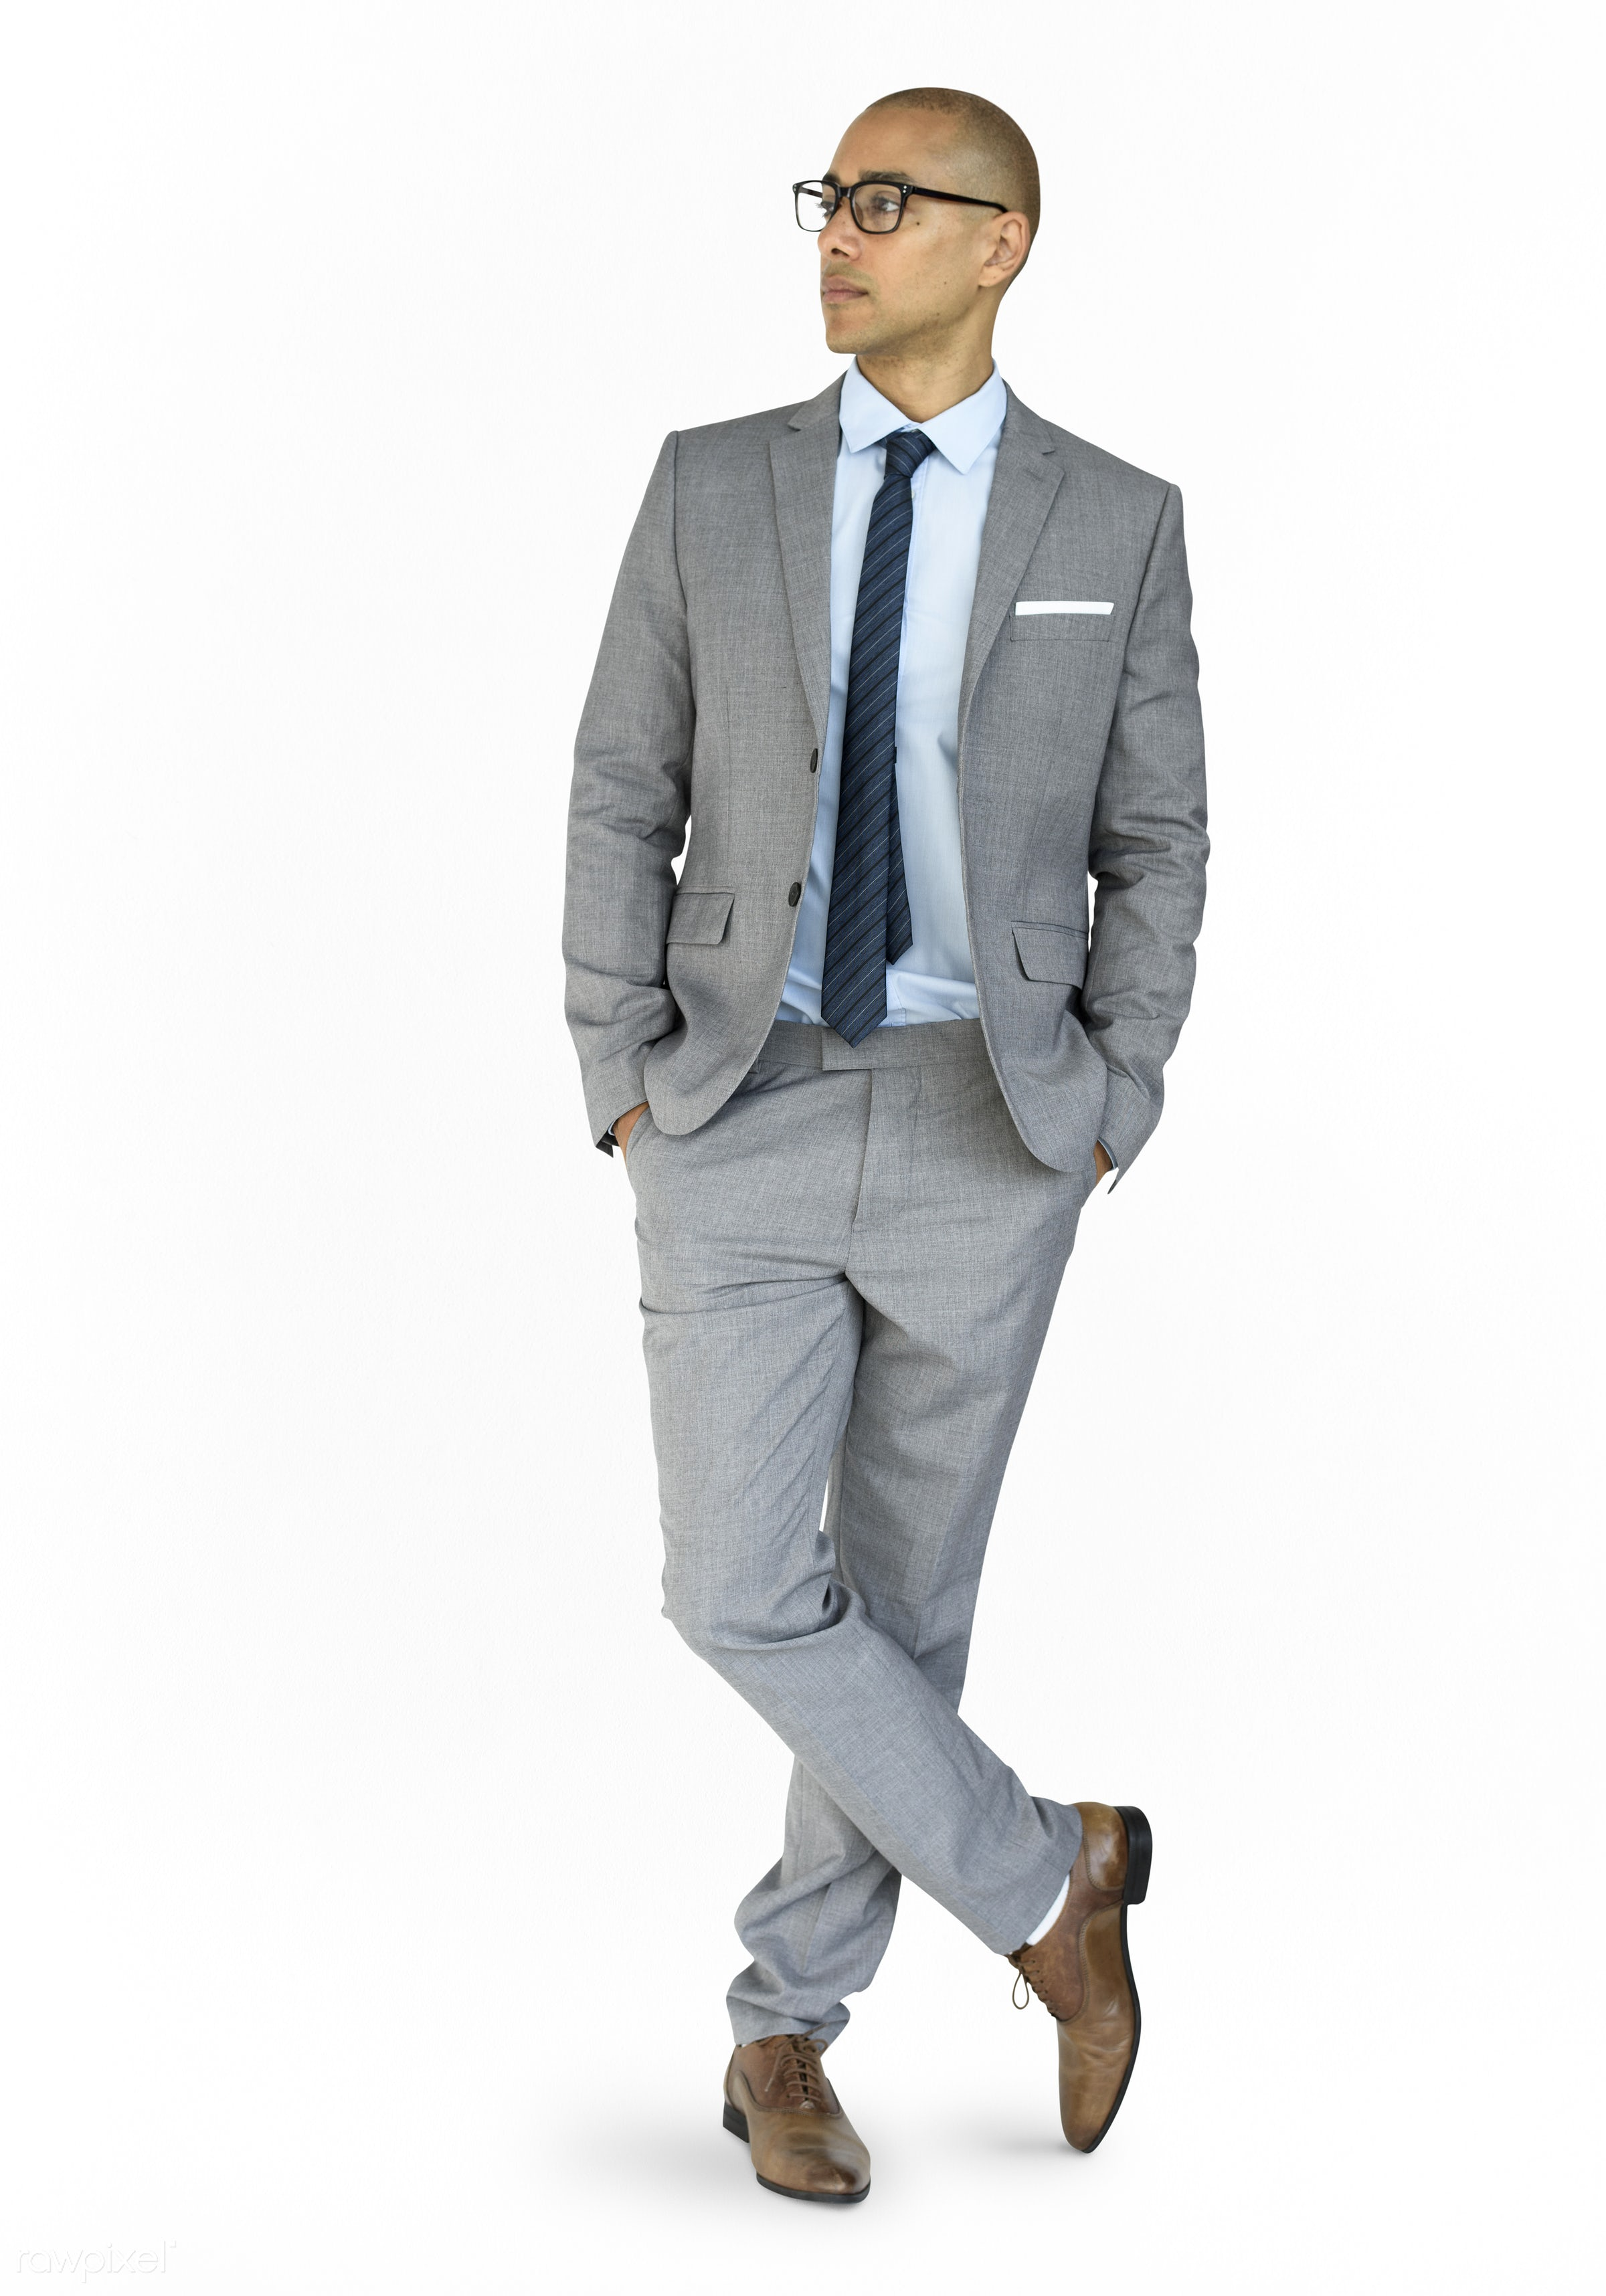 expression, studio, model, person, full length, white collar worker, isolated on white, race, people, business, businessman...